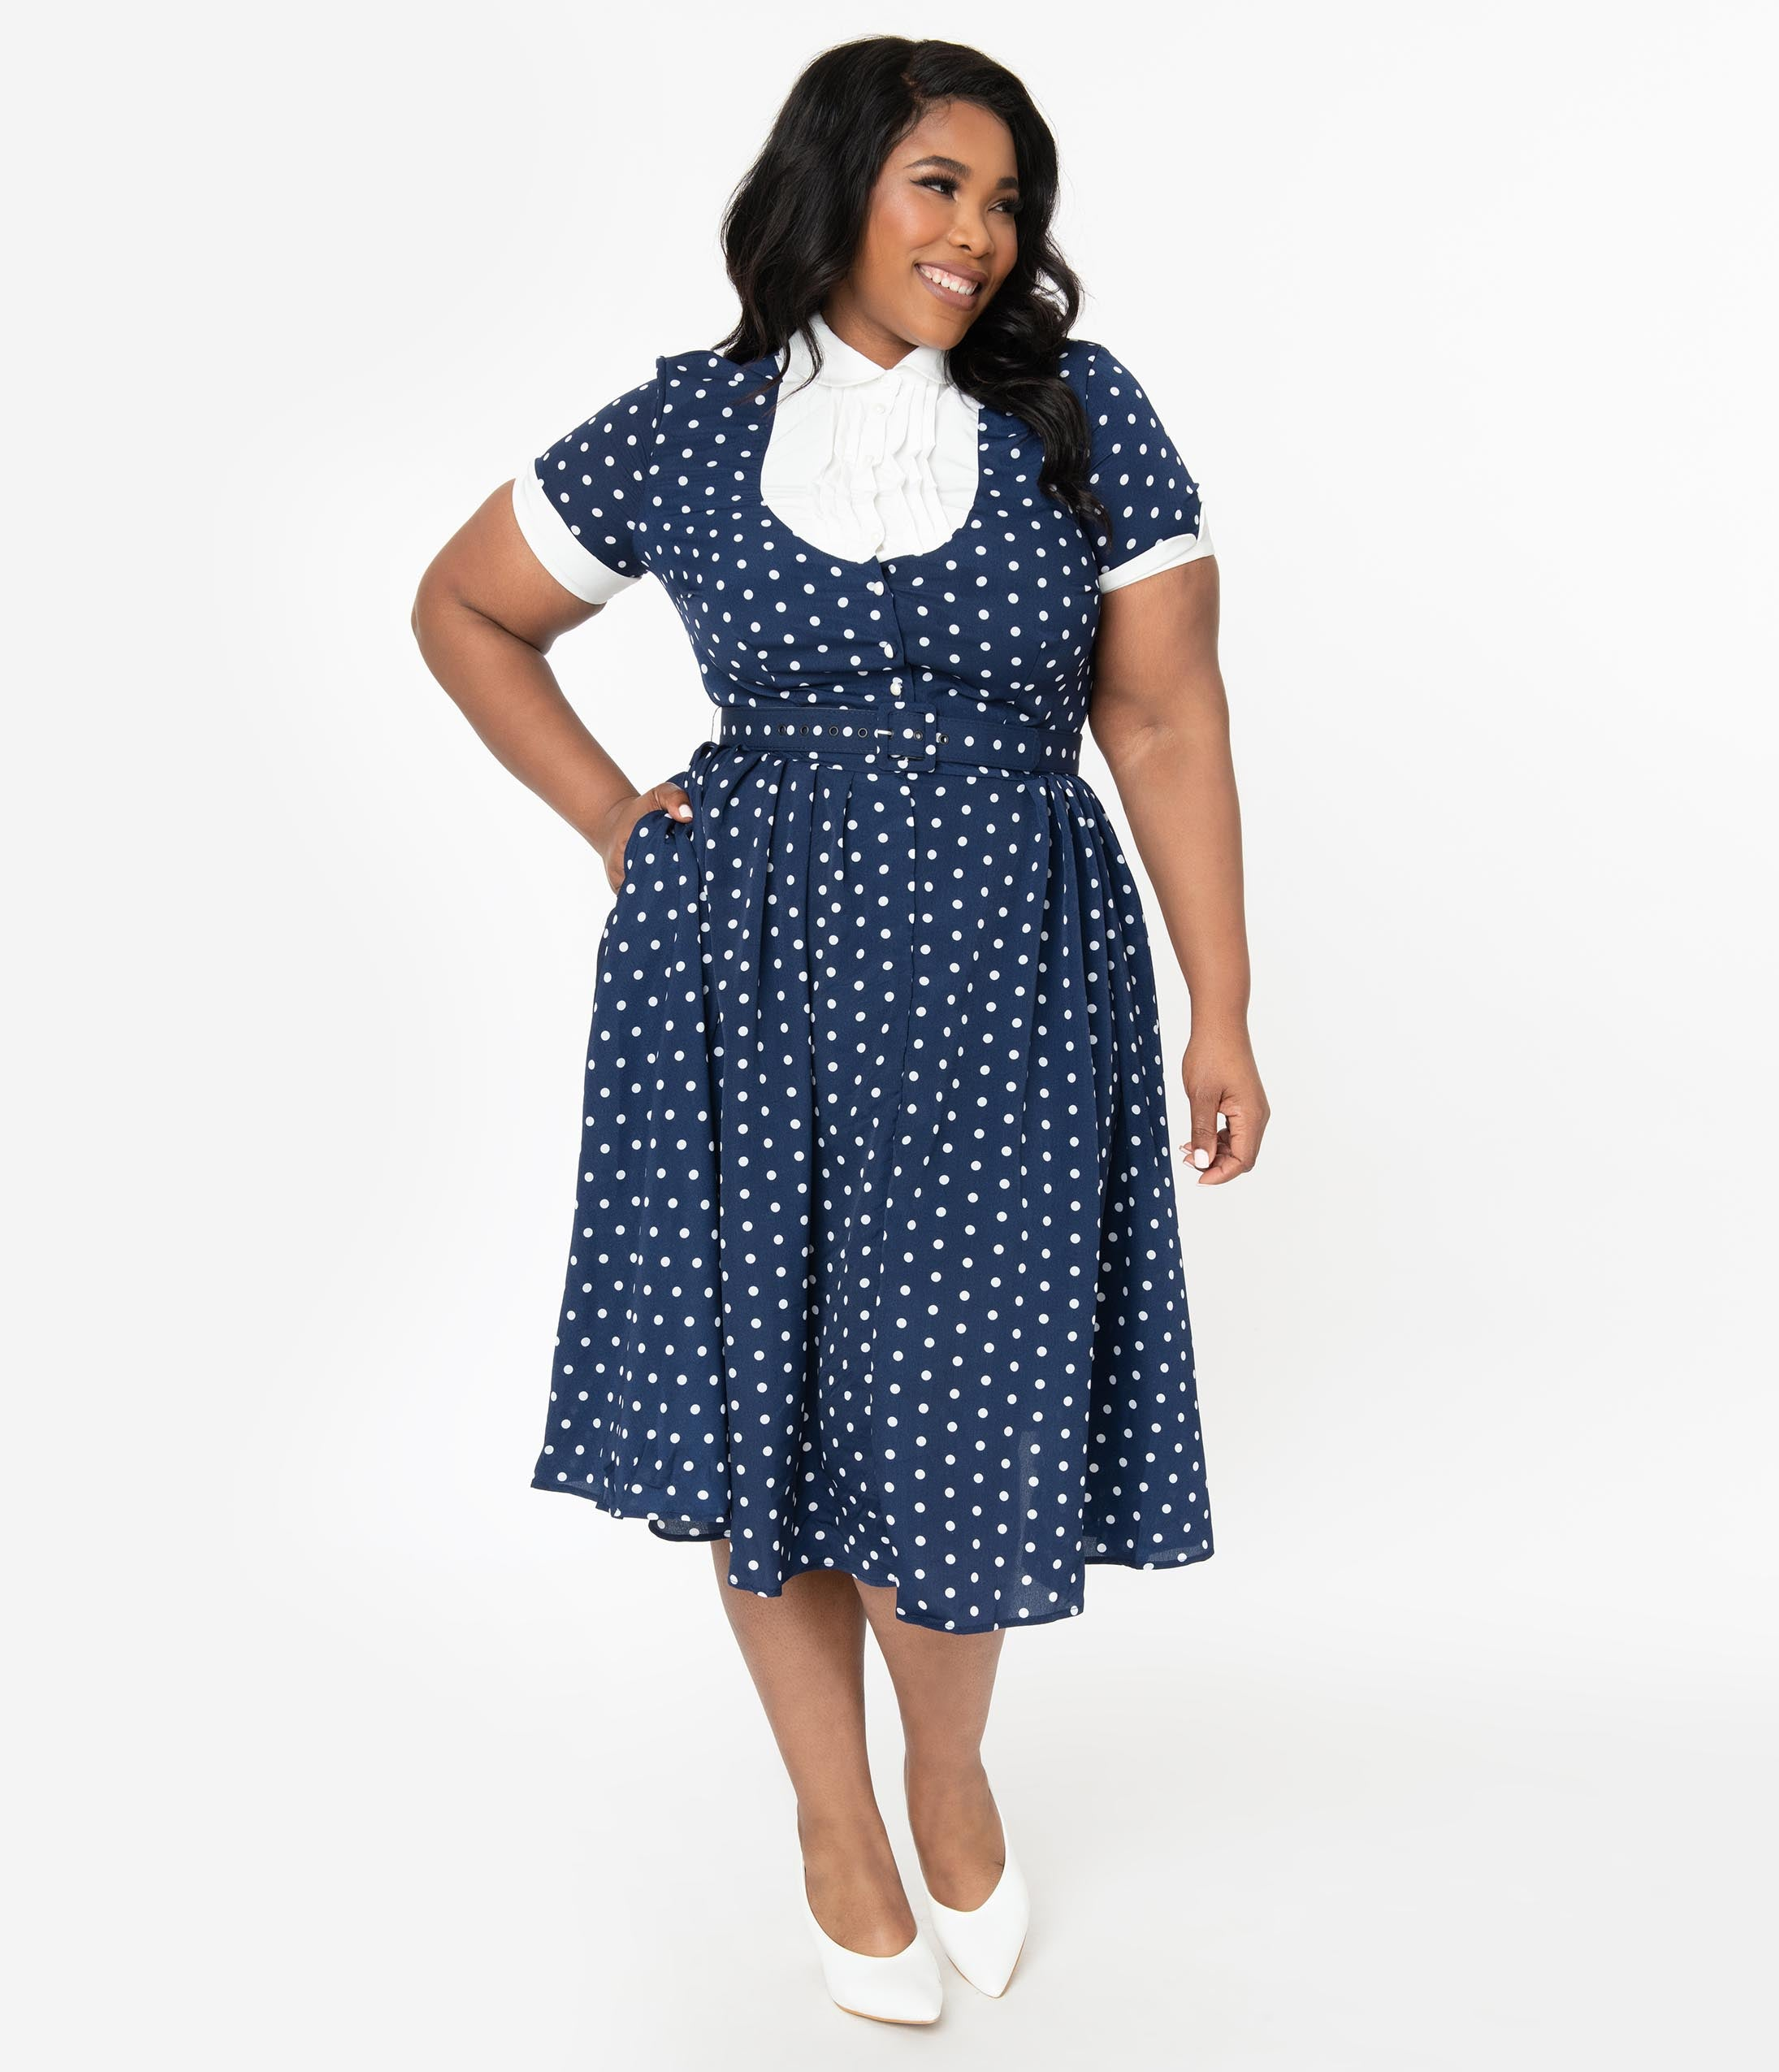 1950s Plus Size Dresses, Swing Dresses I Love Lucy X Unique Vintage Plus Size Navy  White Polka Dot Ricardo Swing Dress $98.00 AT vintagedancer.com